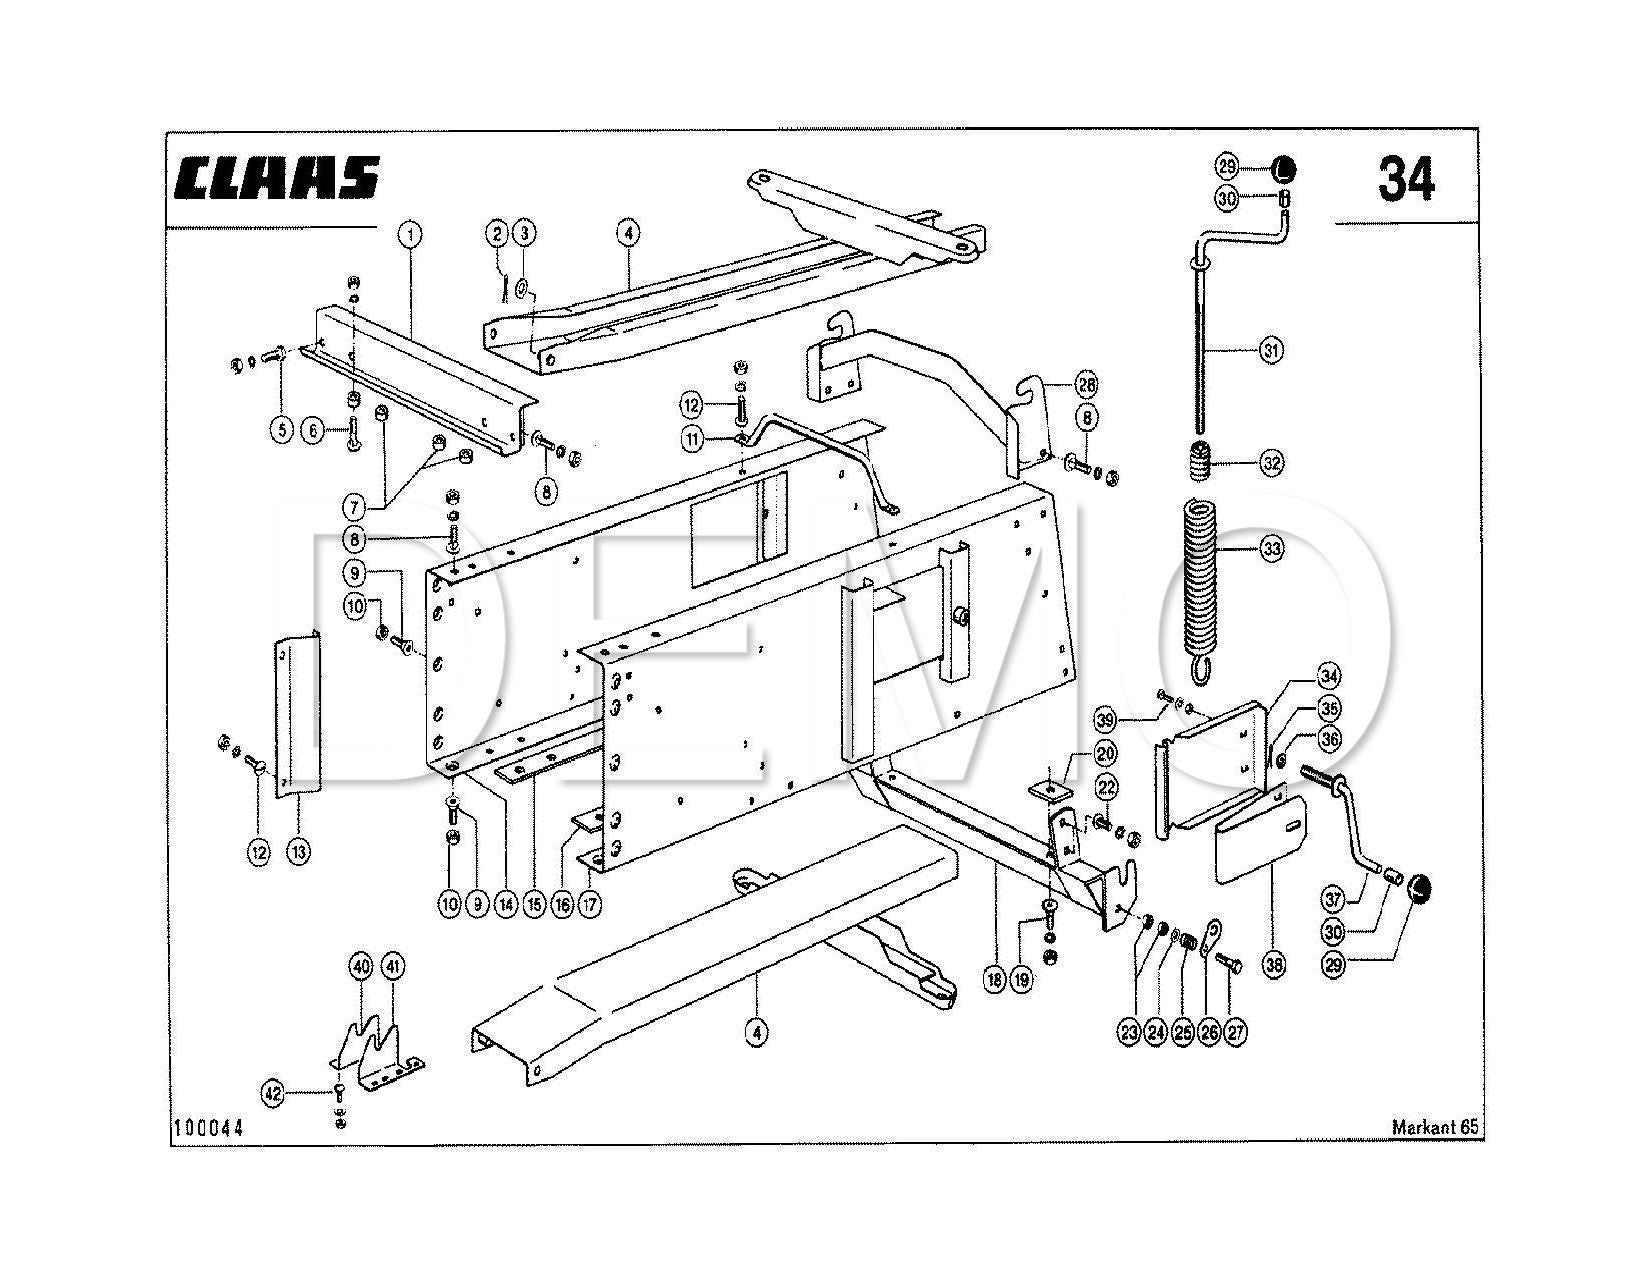 claas markant 65 parts catalogue spares list manual pdf catalog rh 123manuals com claas markant 65 baler manual claas markant 65 specifications